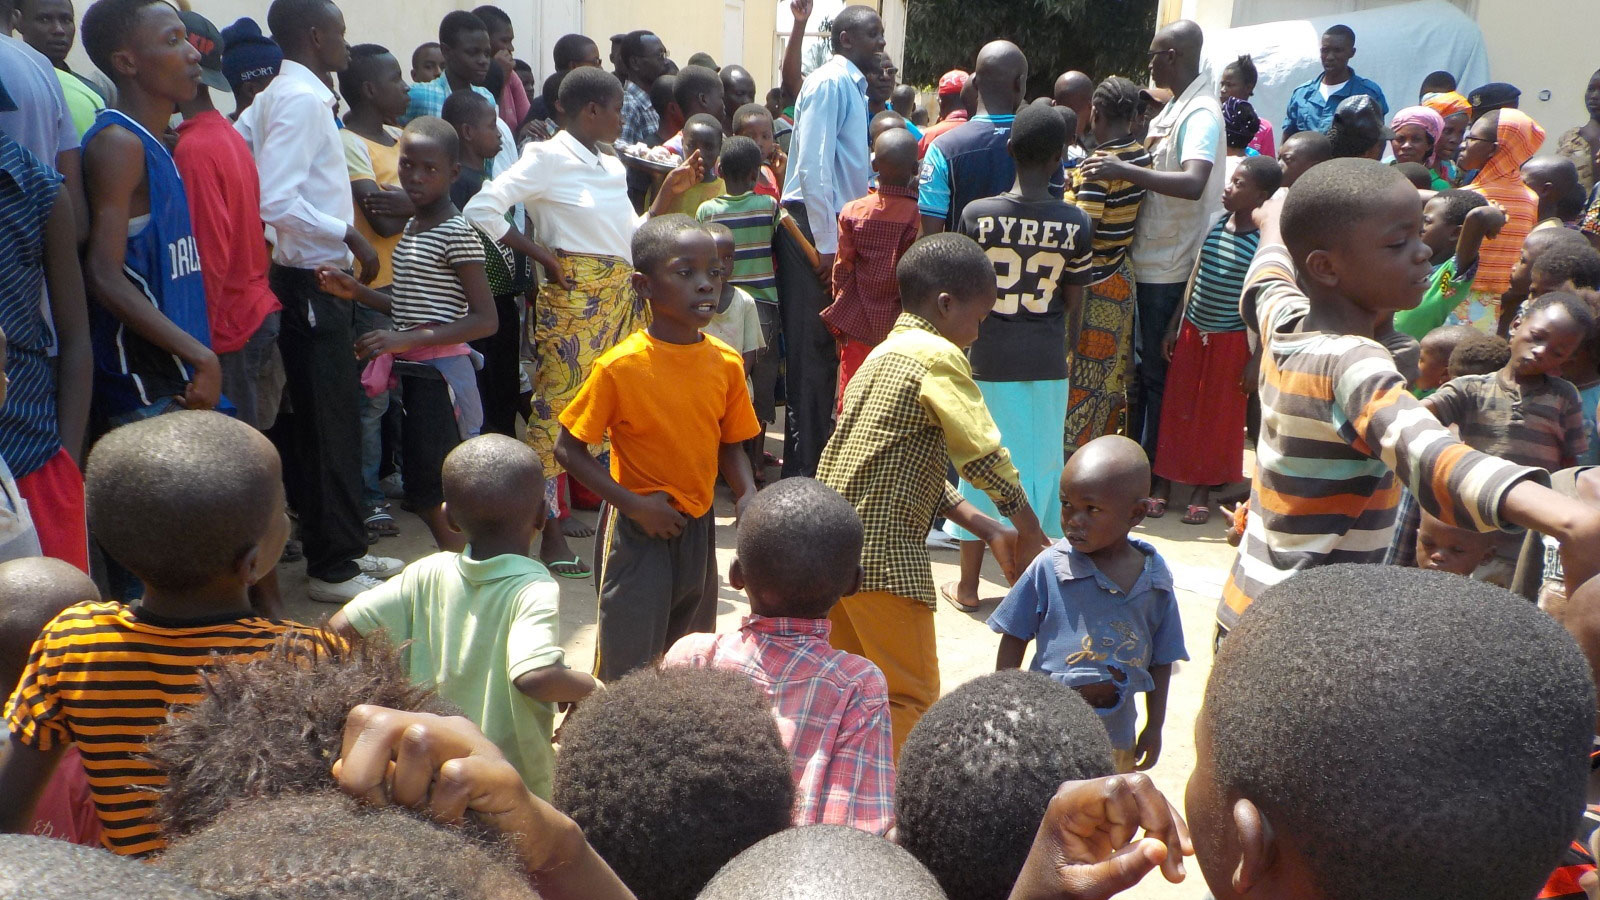 Children-and-adults-waiting-for-aid-in-Burundi